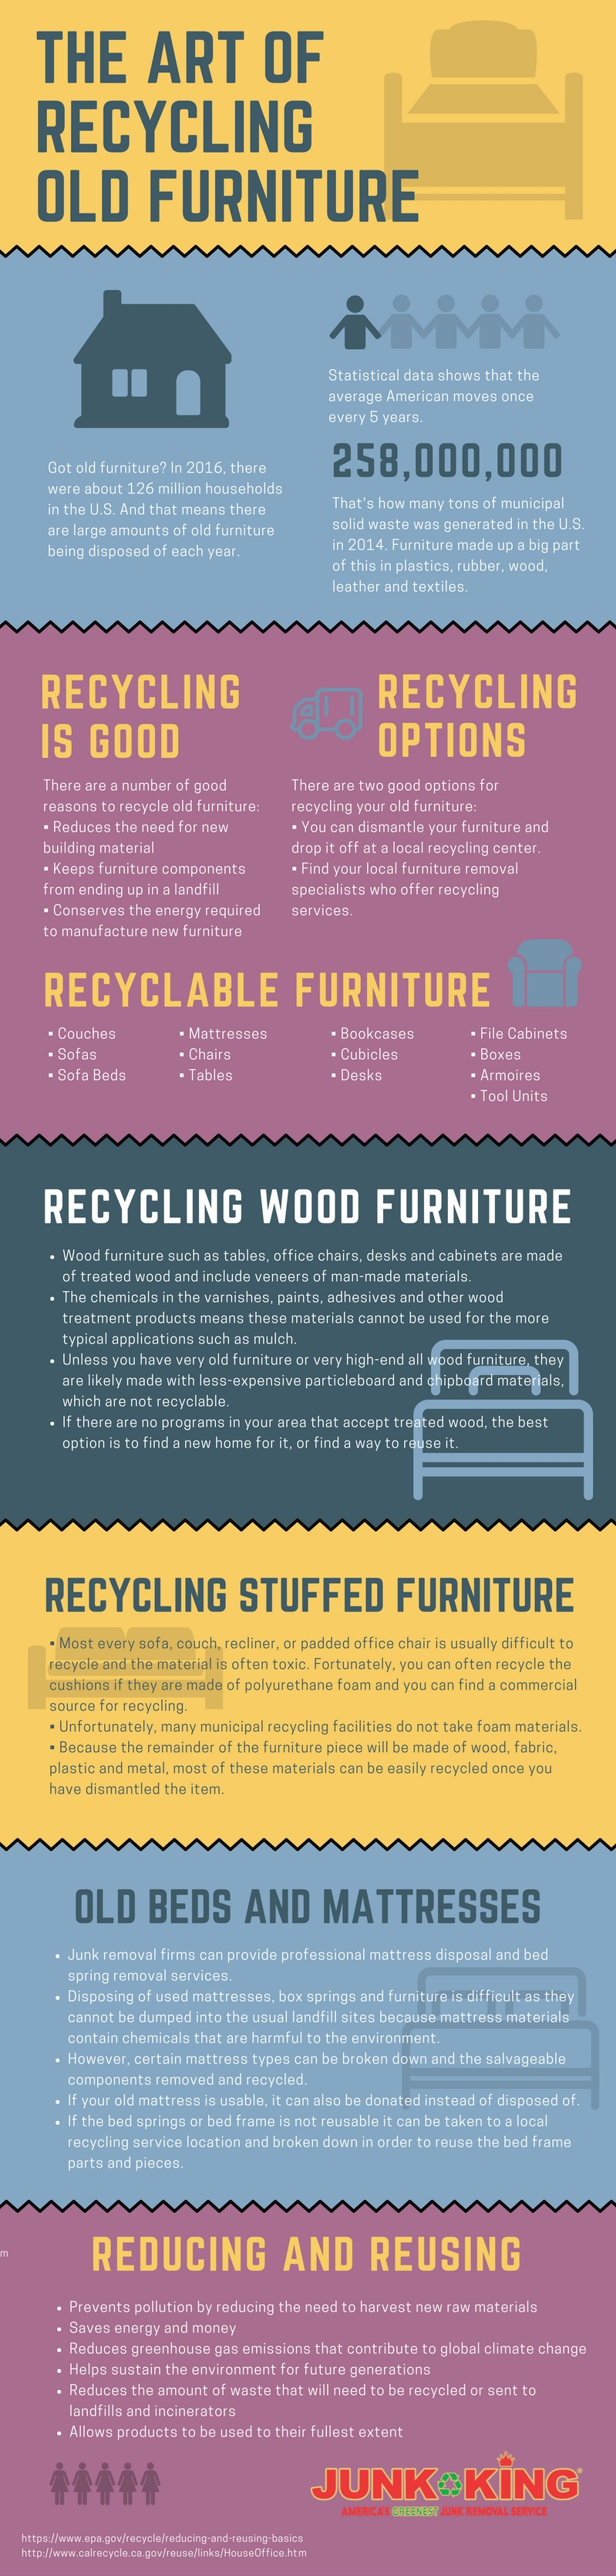 recycling_old_furniture-1